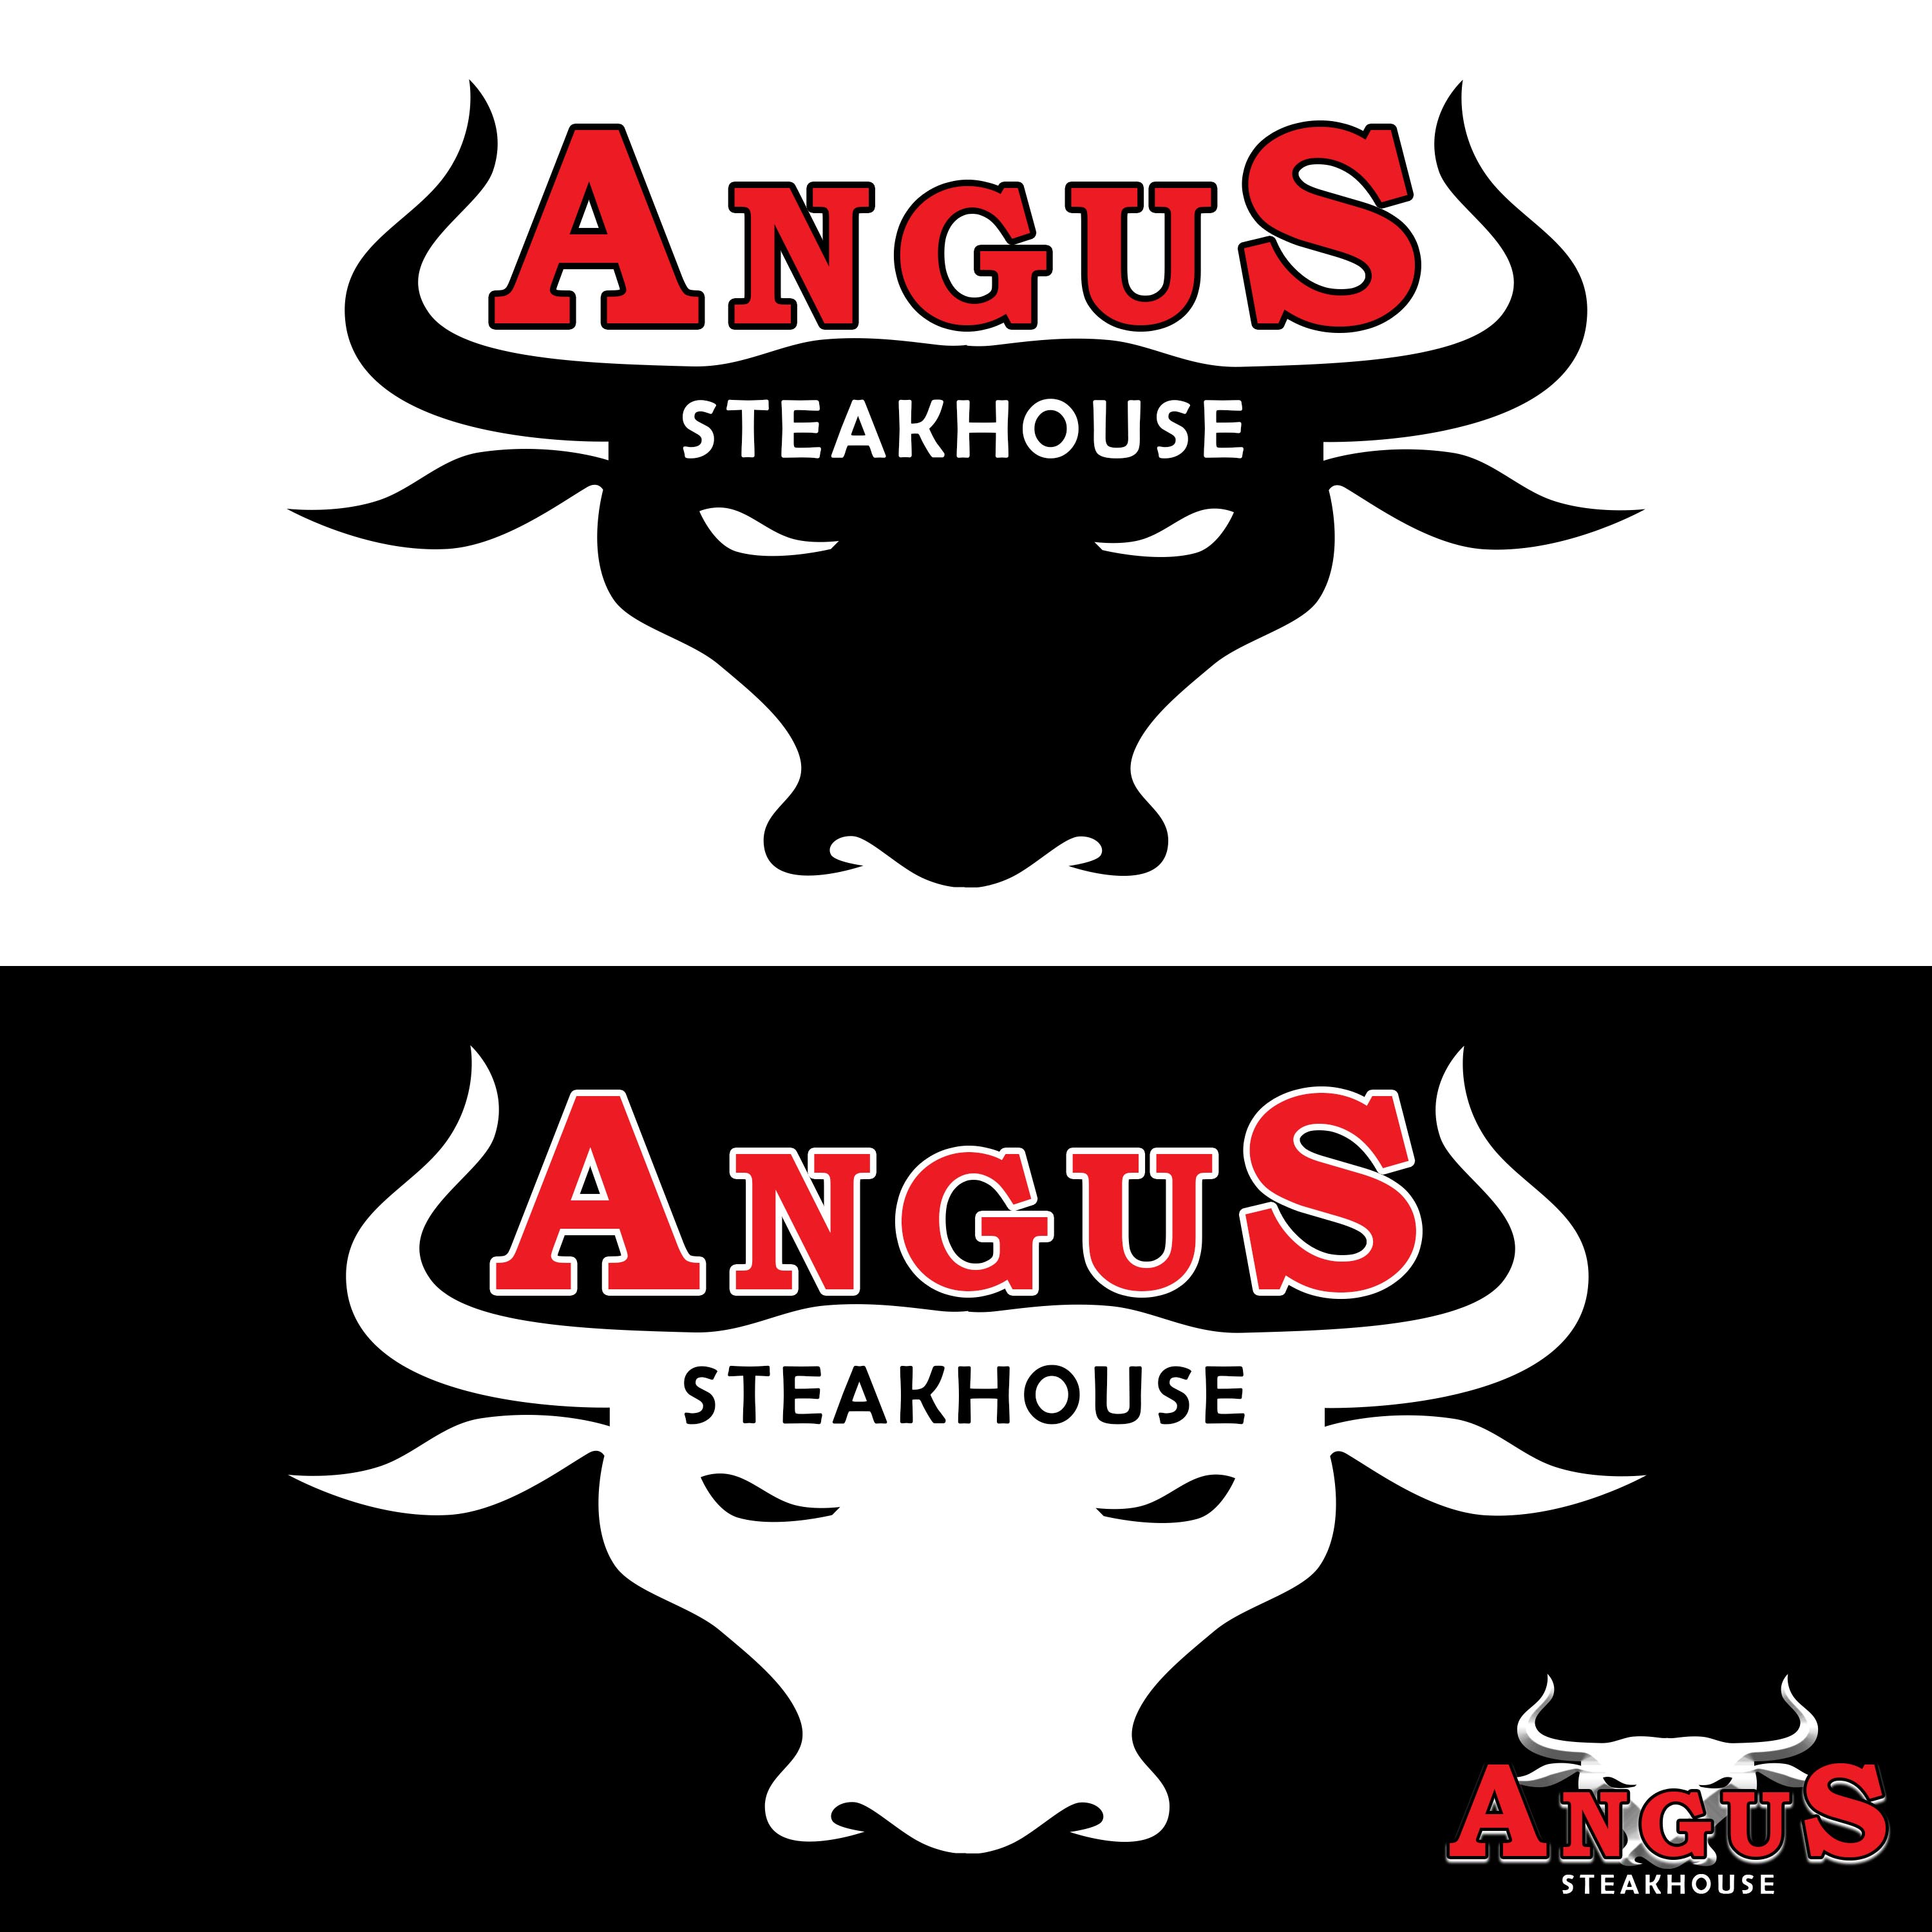 Logo Design by buddha - Entry No. 32 in the Logo Design Contest Imaginative Custom Design for Angus Steakhouse.